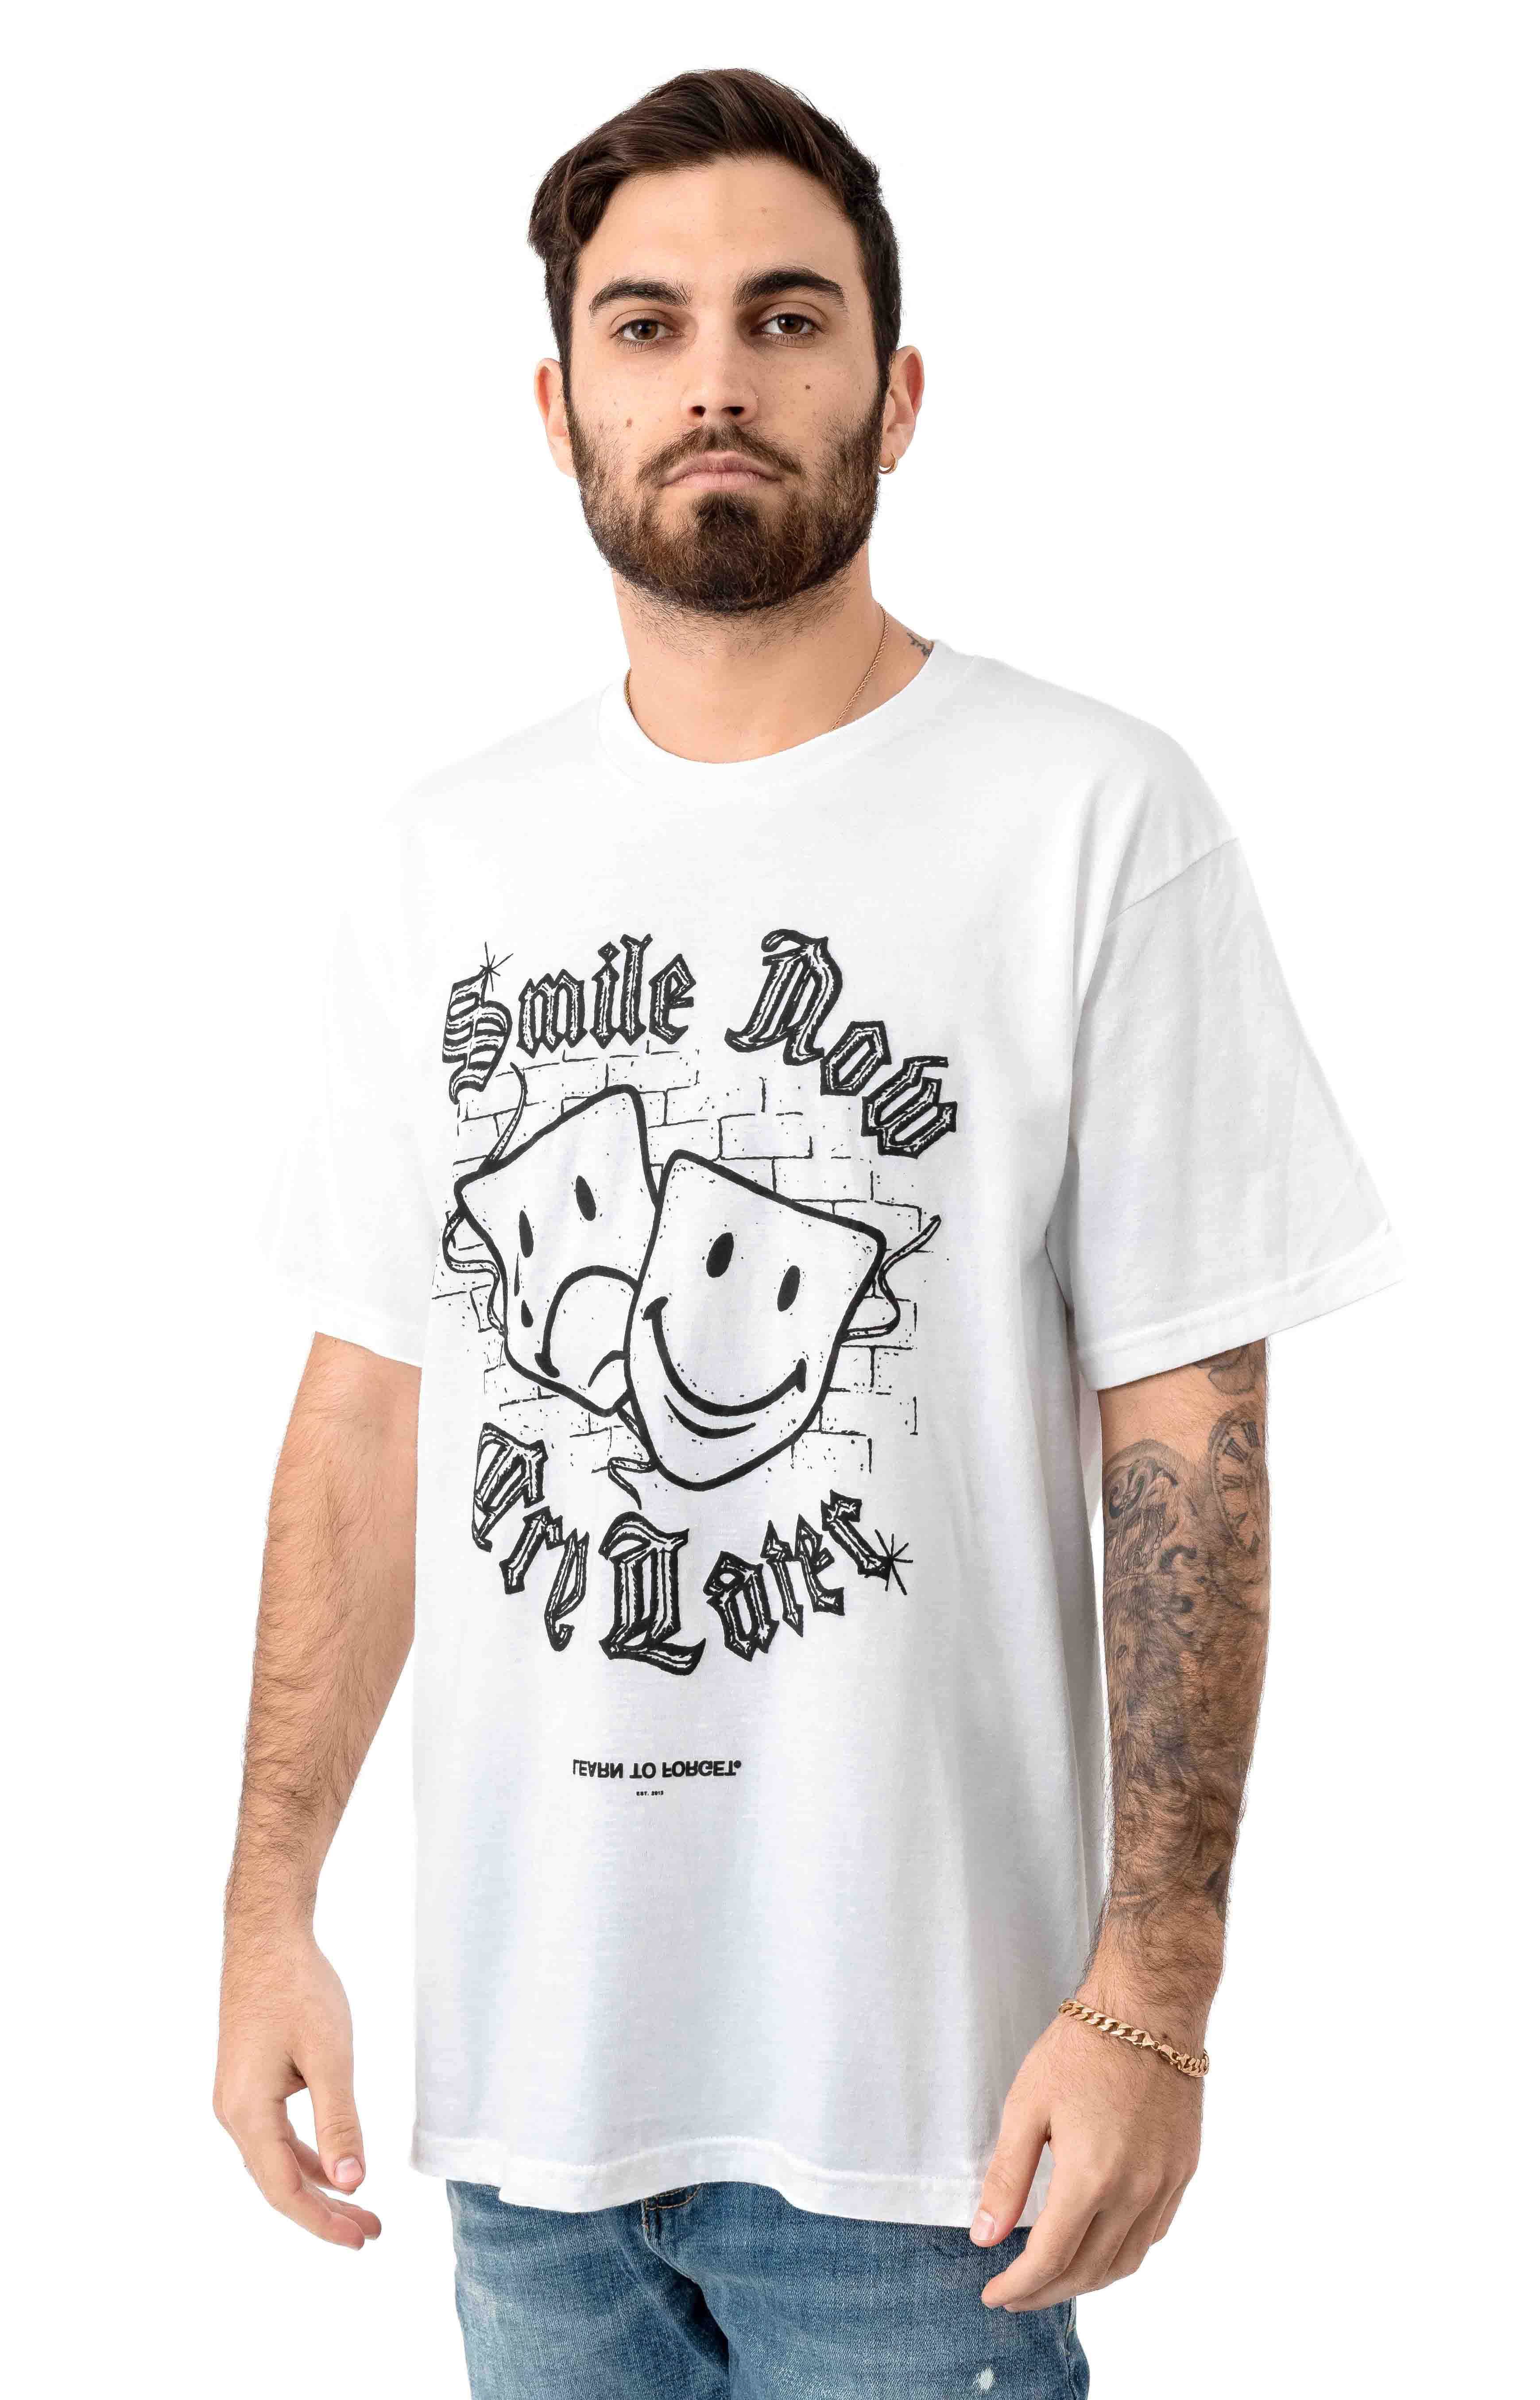 Smile Now Cry Later T-Shirt - White